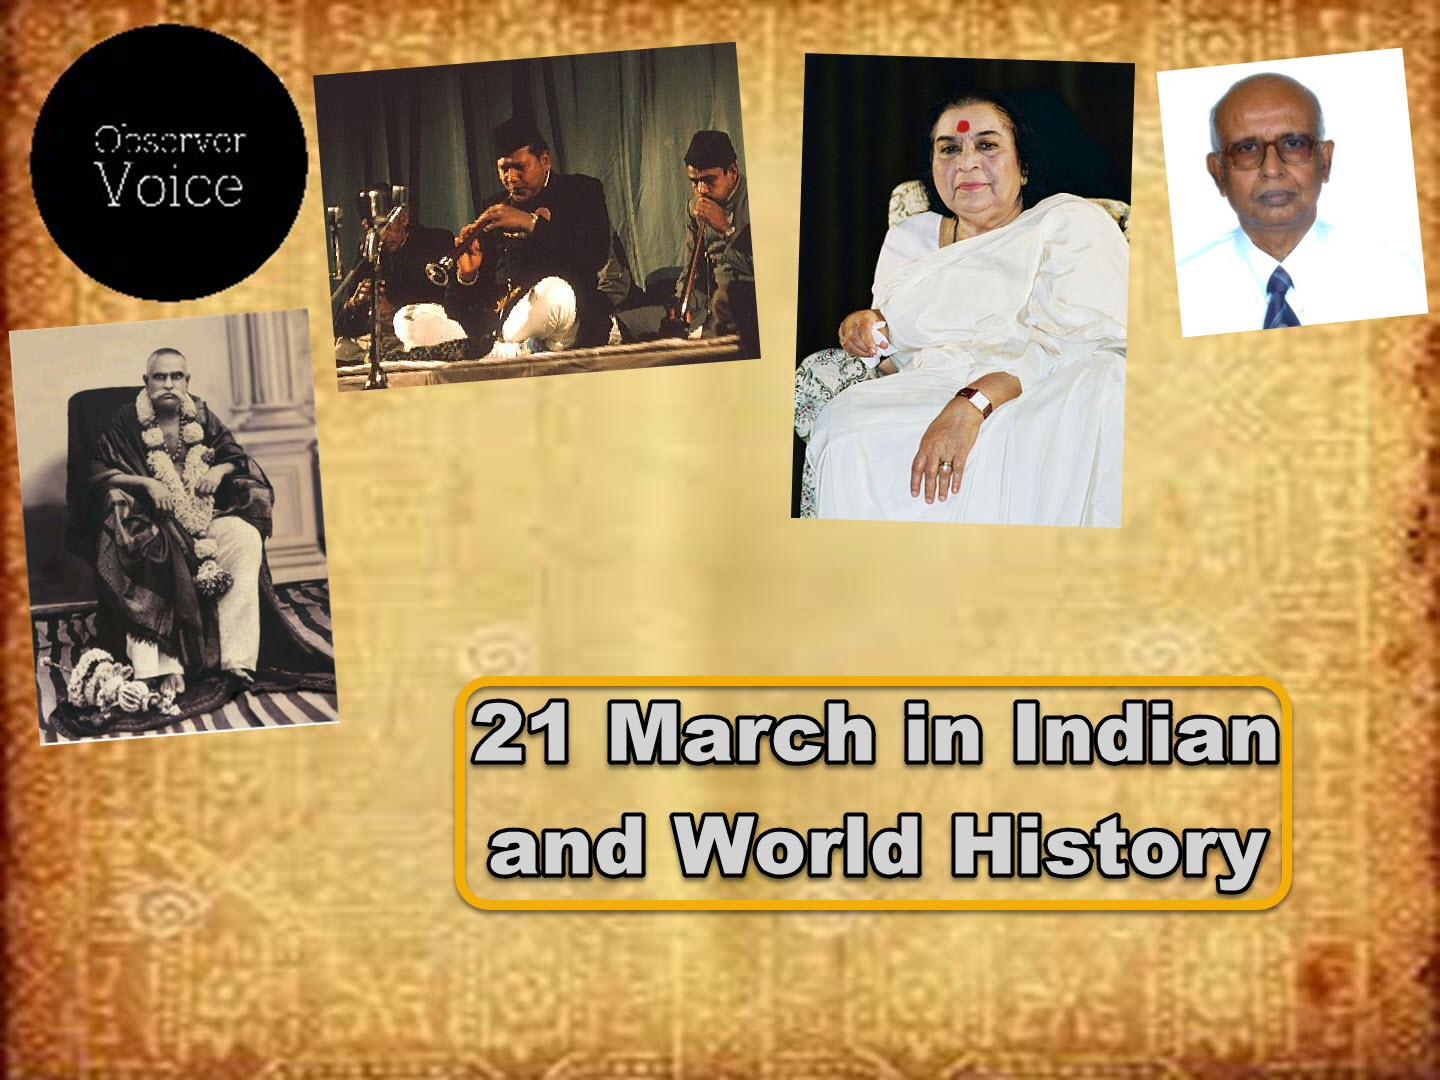 21 March in Indian and World History